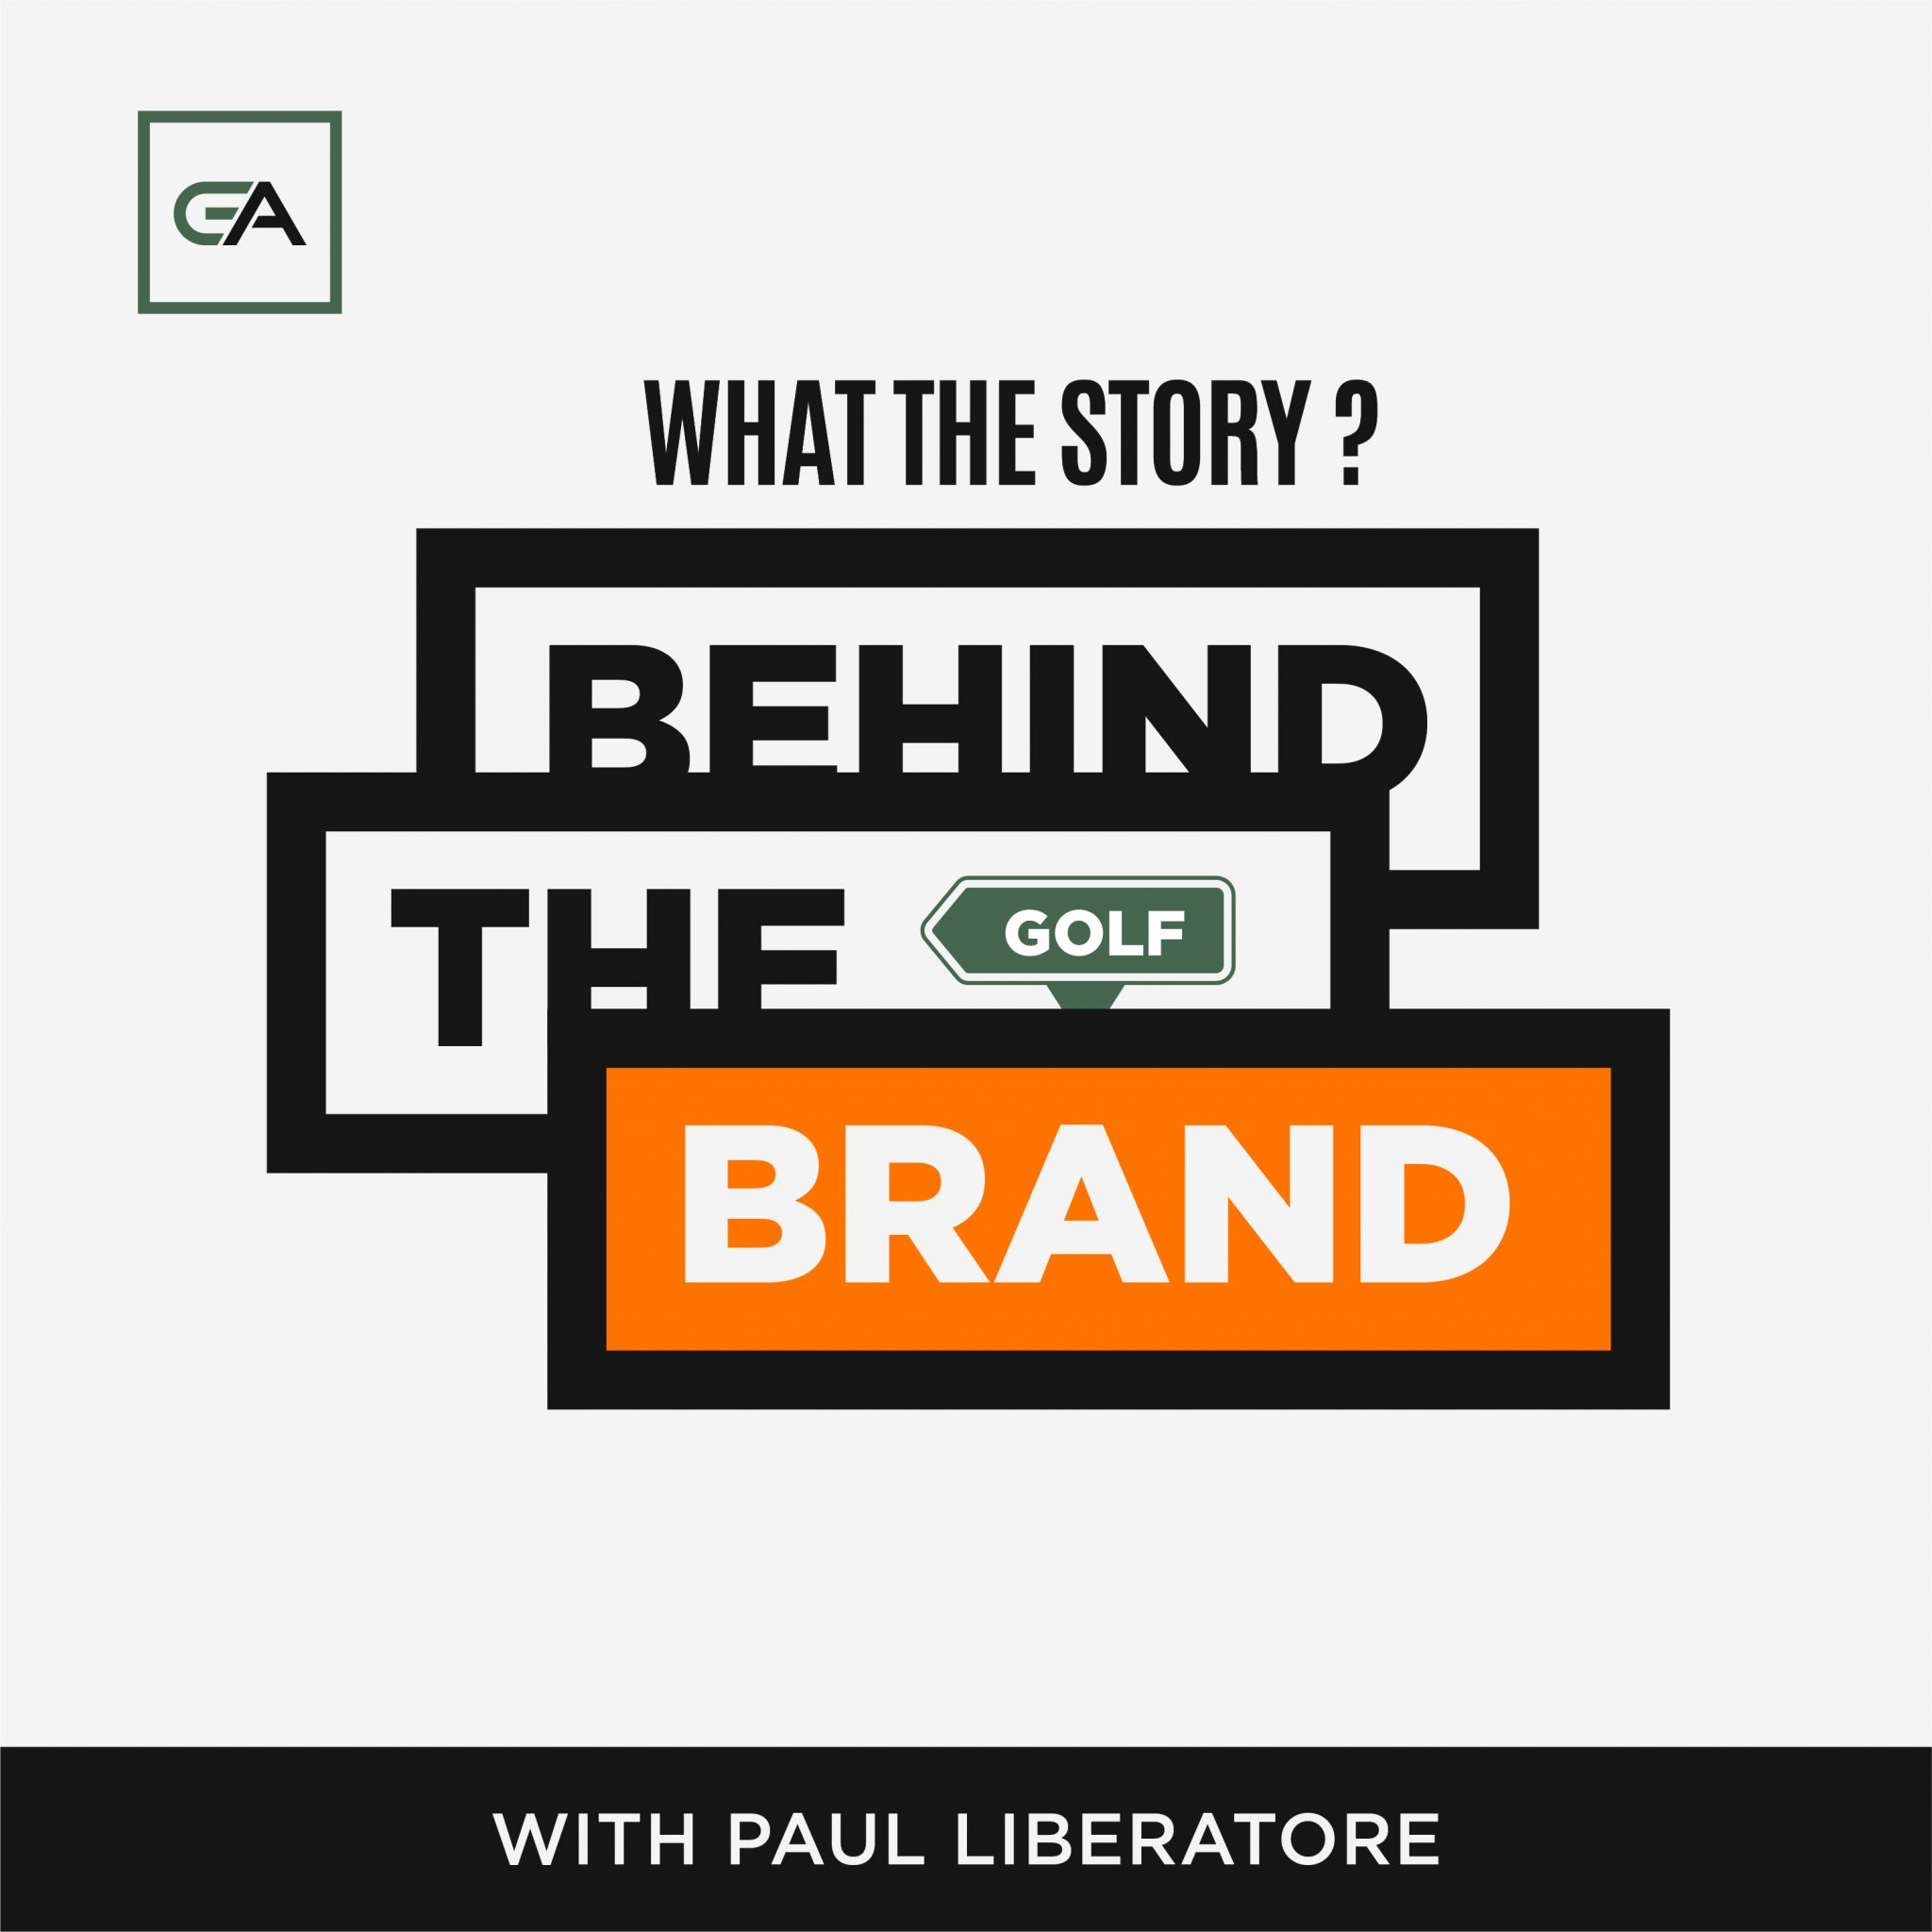 behind the brand with paul liberatore ver 2e 02 1